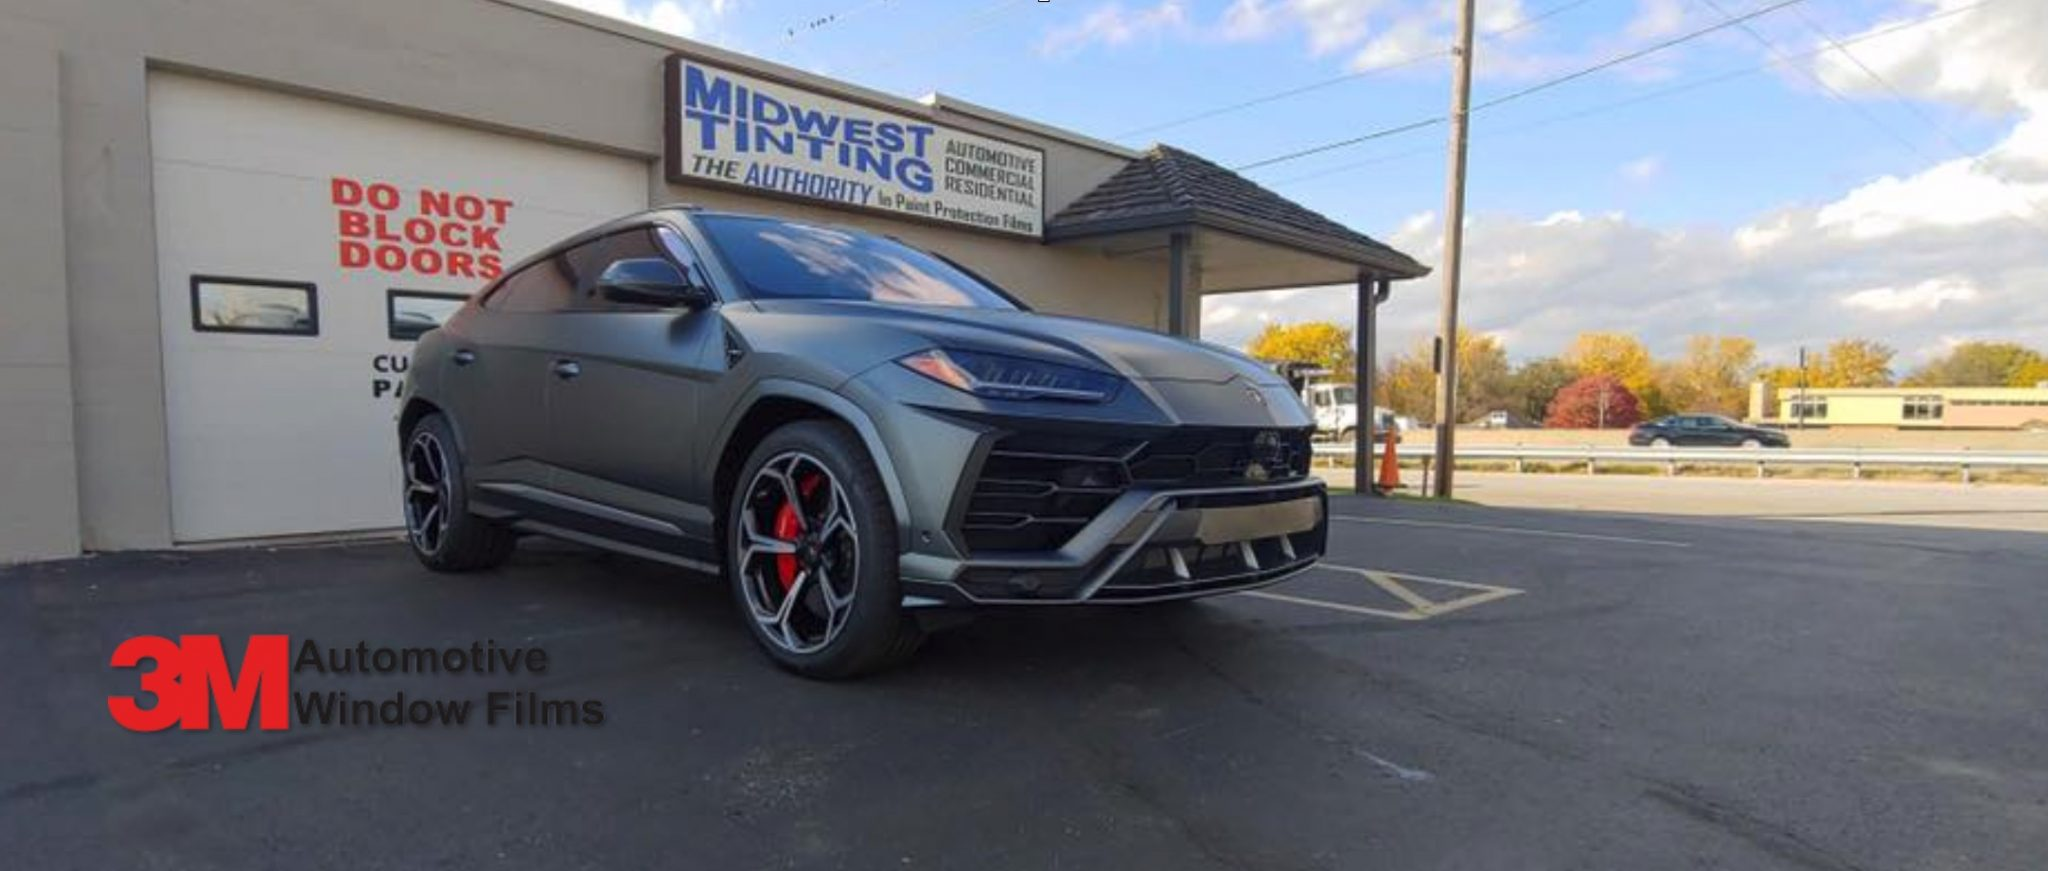 Midwest Tinting Proudly Offers 3M Crystalline Automotive Window Film in Kansas City - Automotive Window Tinting in Kansas City